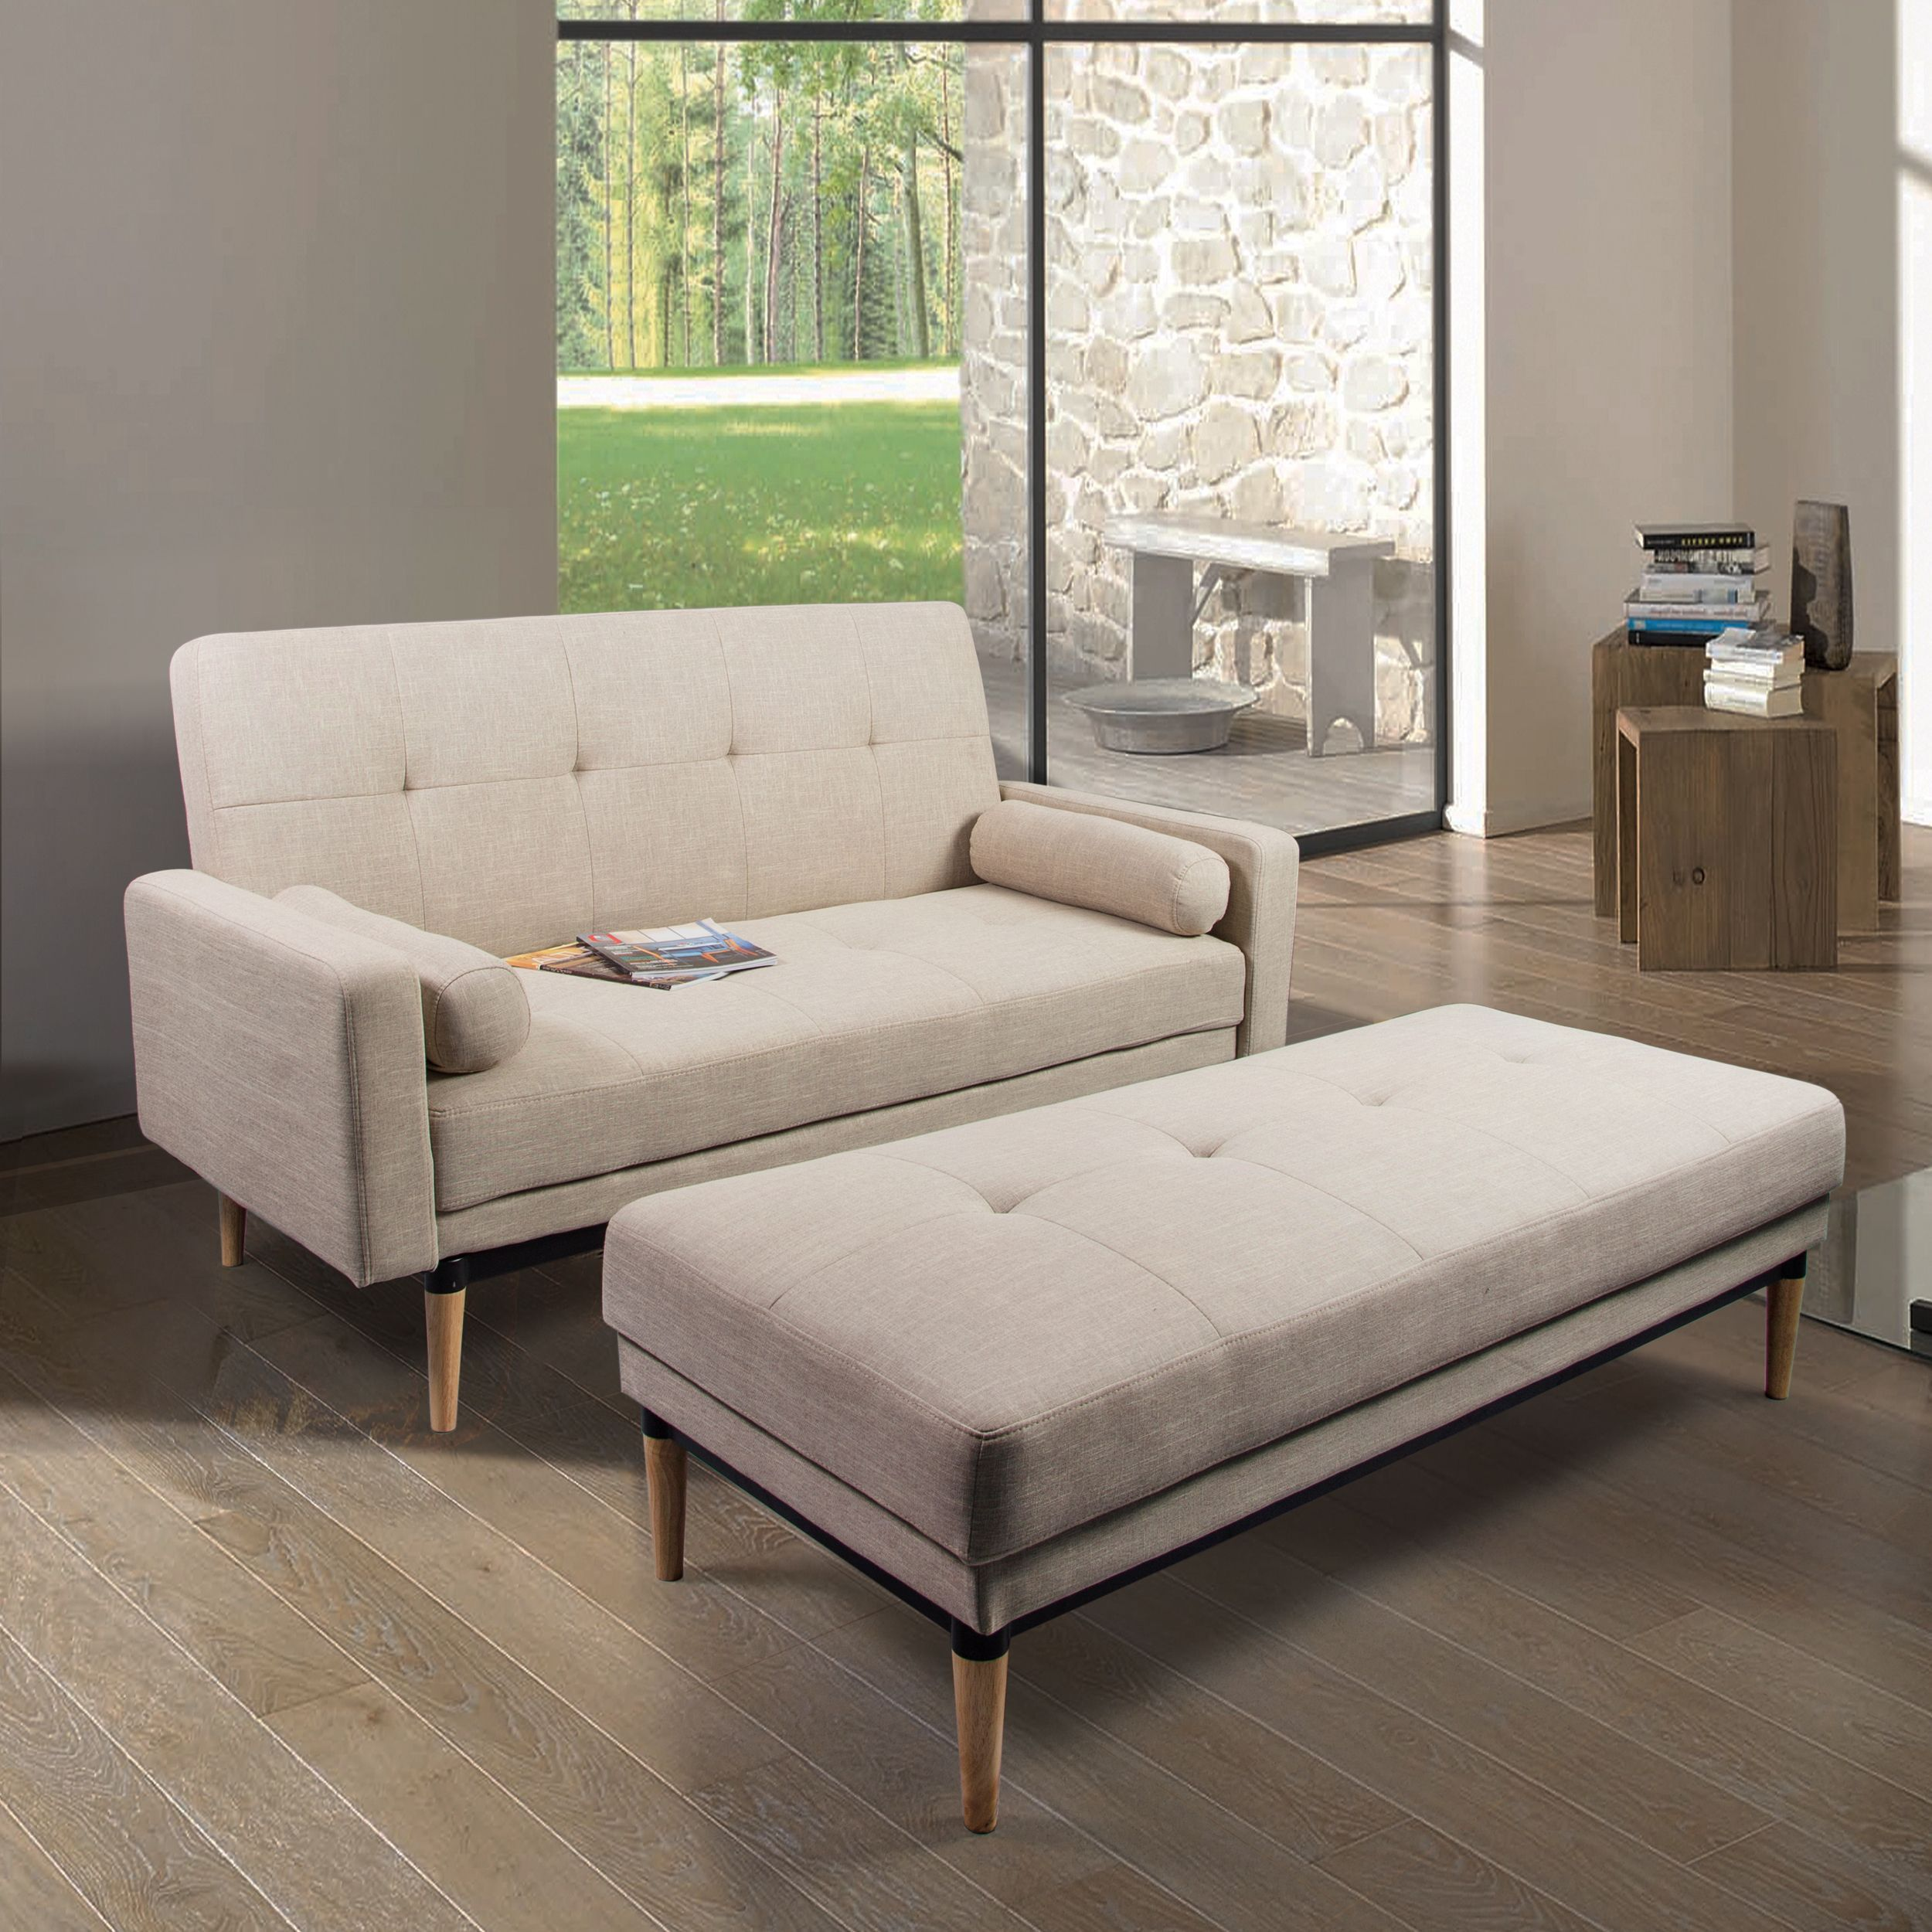 this classy sofa bed and bench  bination is ideal for friends or family staying over  this classy sofa bed and bench  bination is ideal for friends or      rh   pinterest